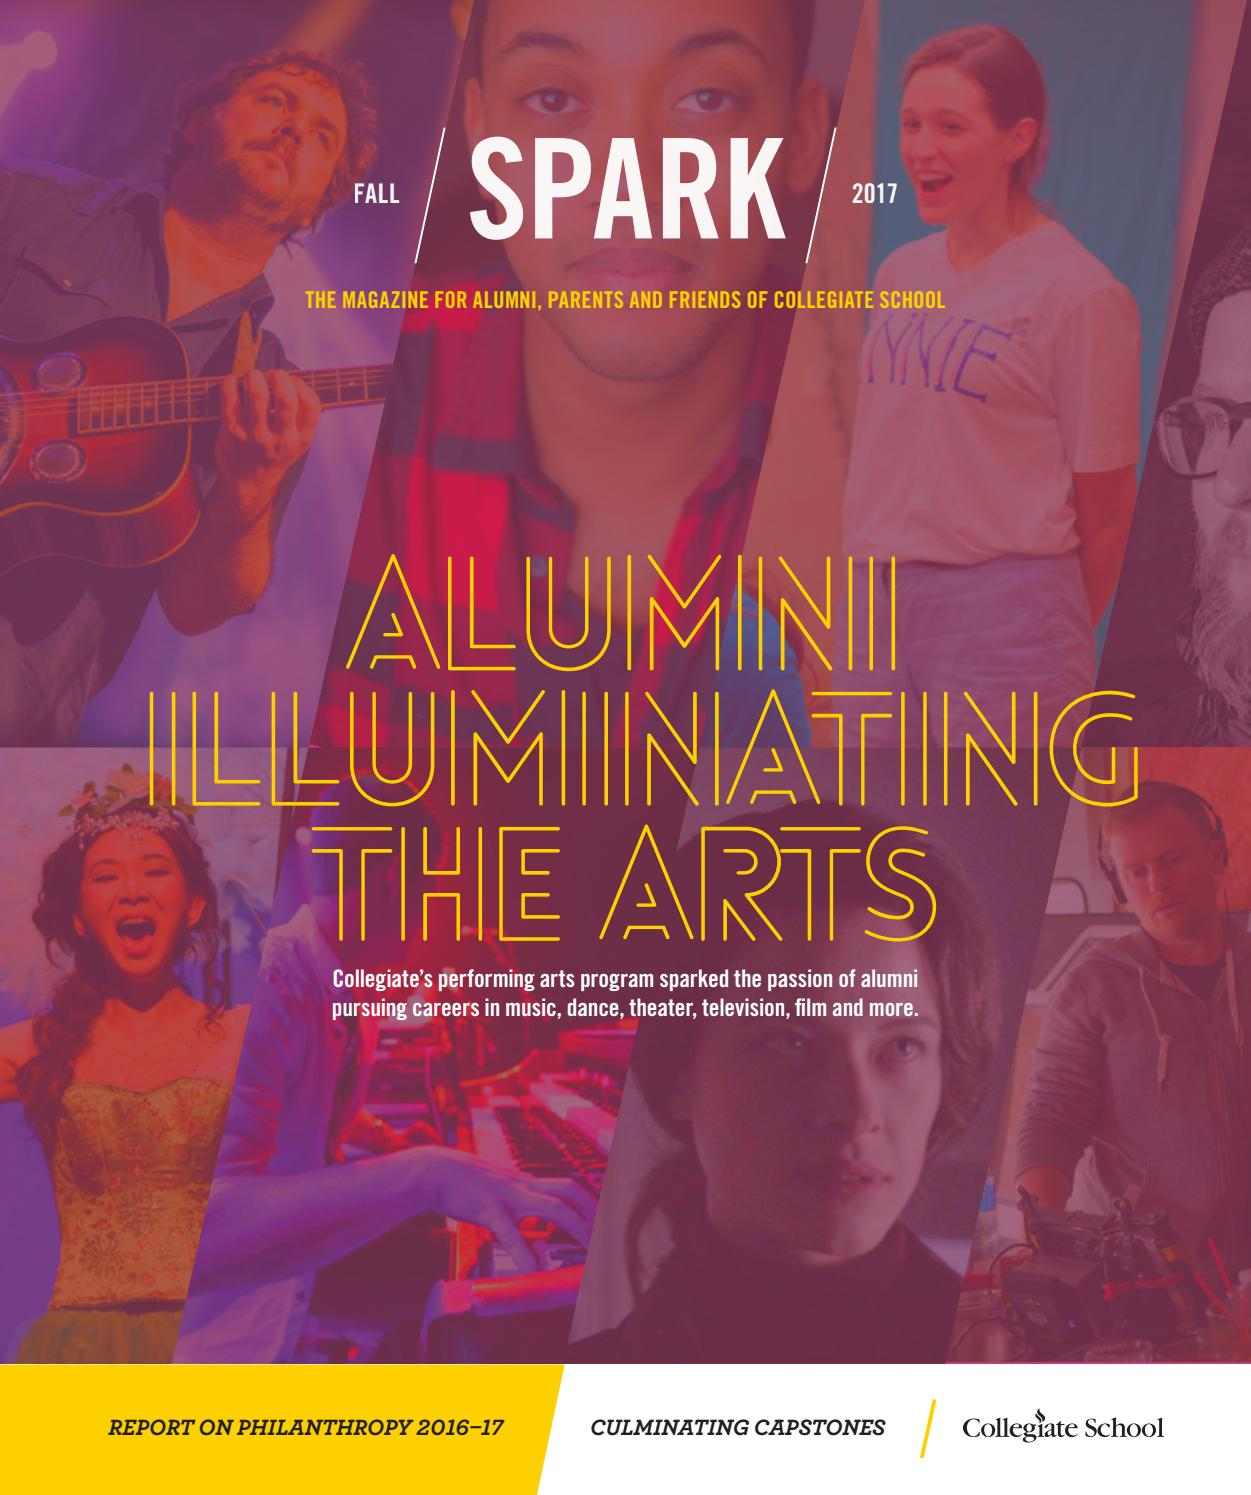 9a17810c5a32 Spark Fall 2017 by Collegiate School - issuu